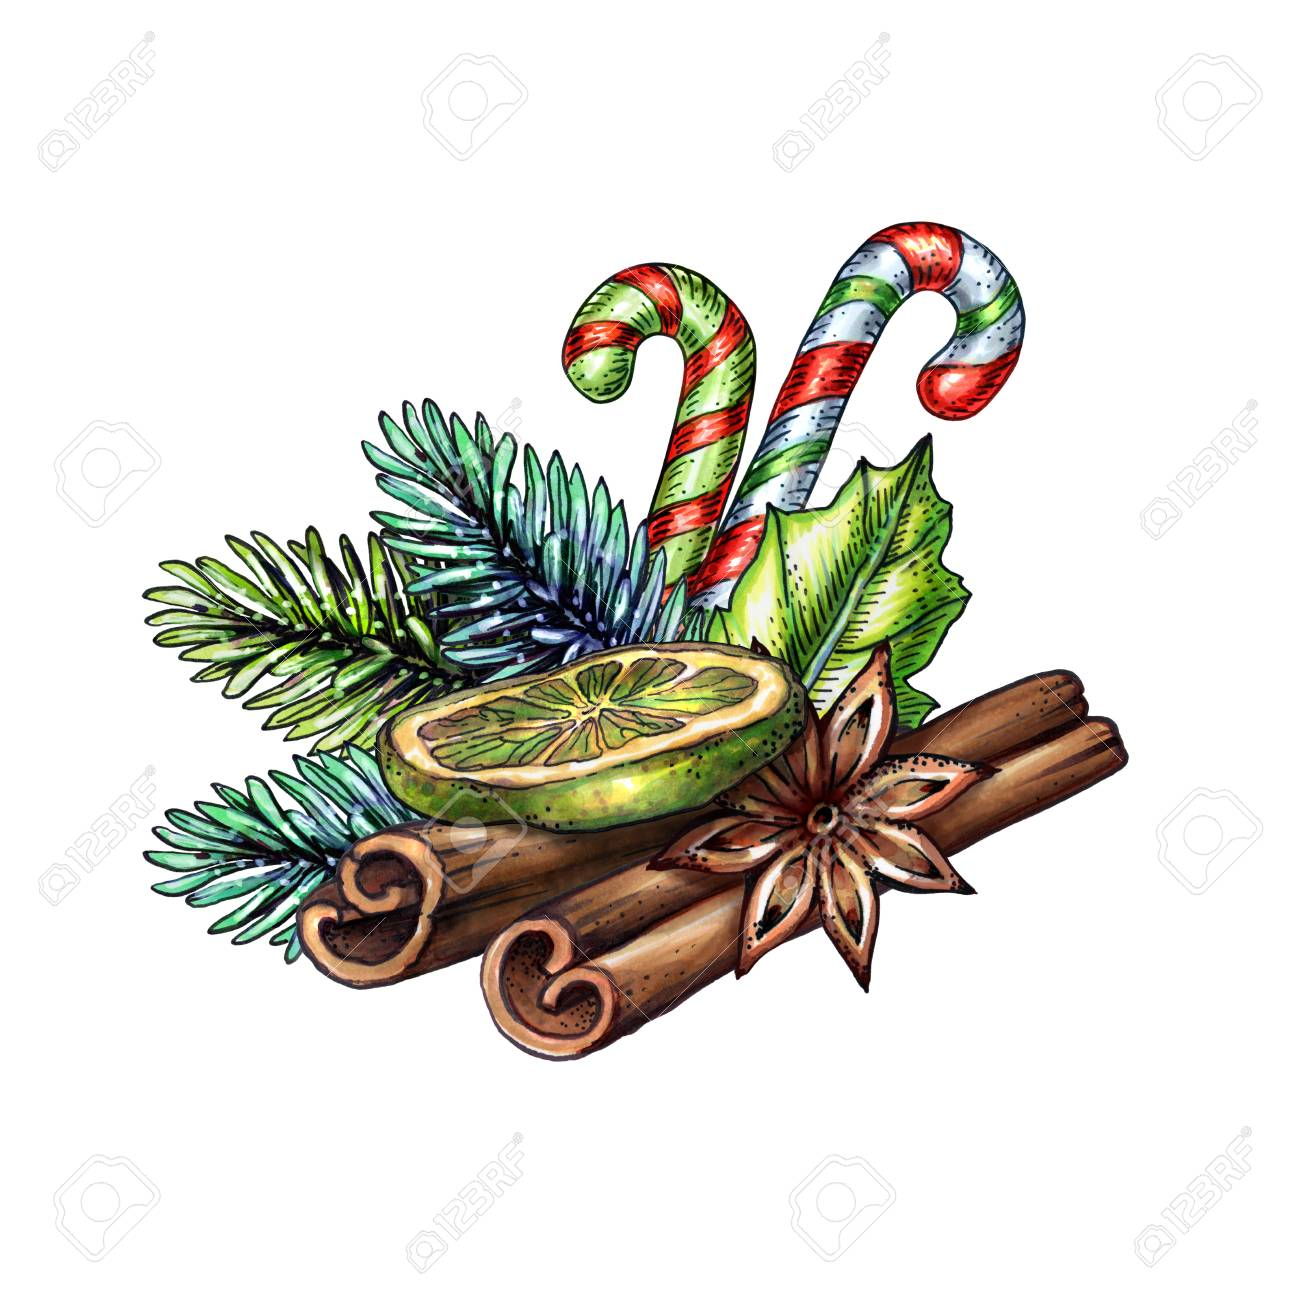 christmas illustration cinnamon sticks dried lime candy cane rh 123rf com candy cane clip art clipped candy cane clip art border